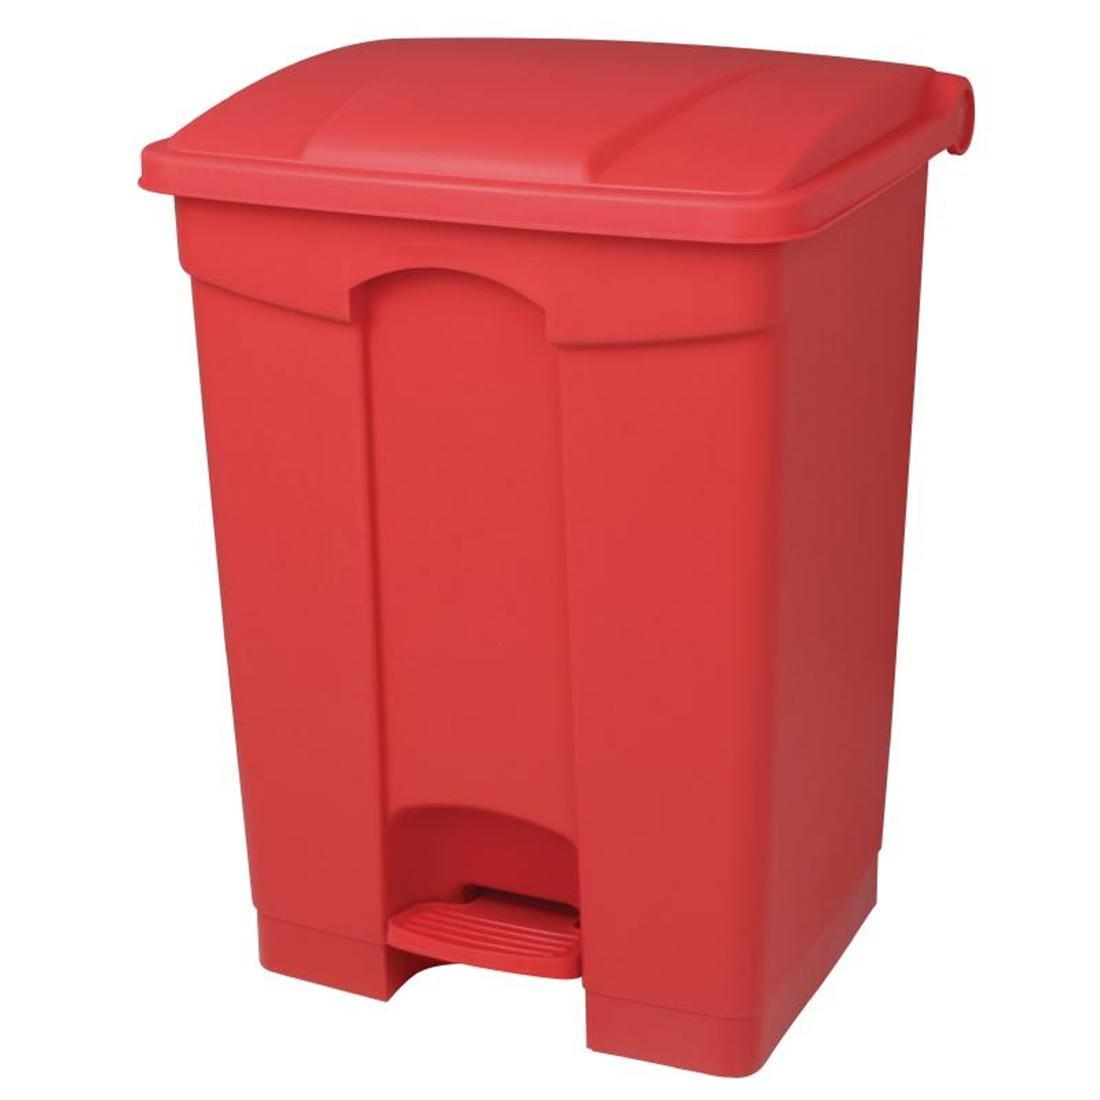 Jantex Kitchen Pedal Bin Red 65Ltr